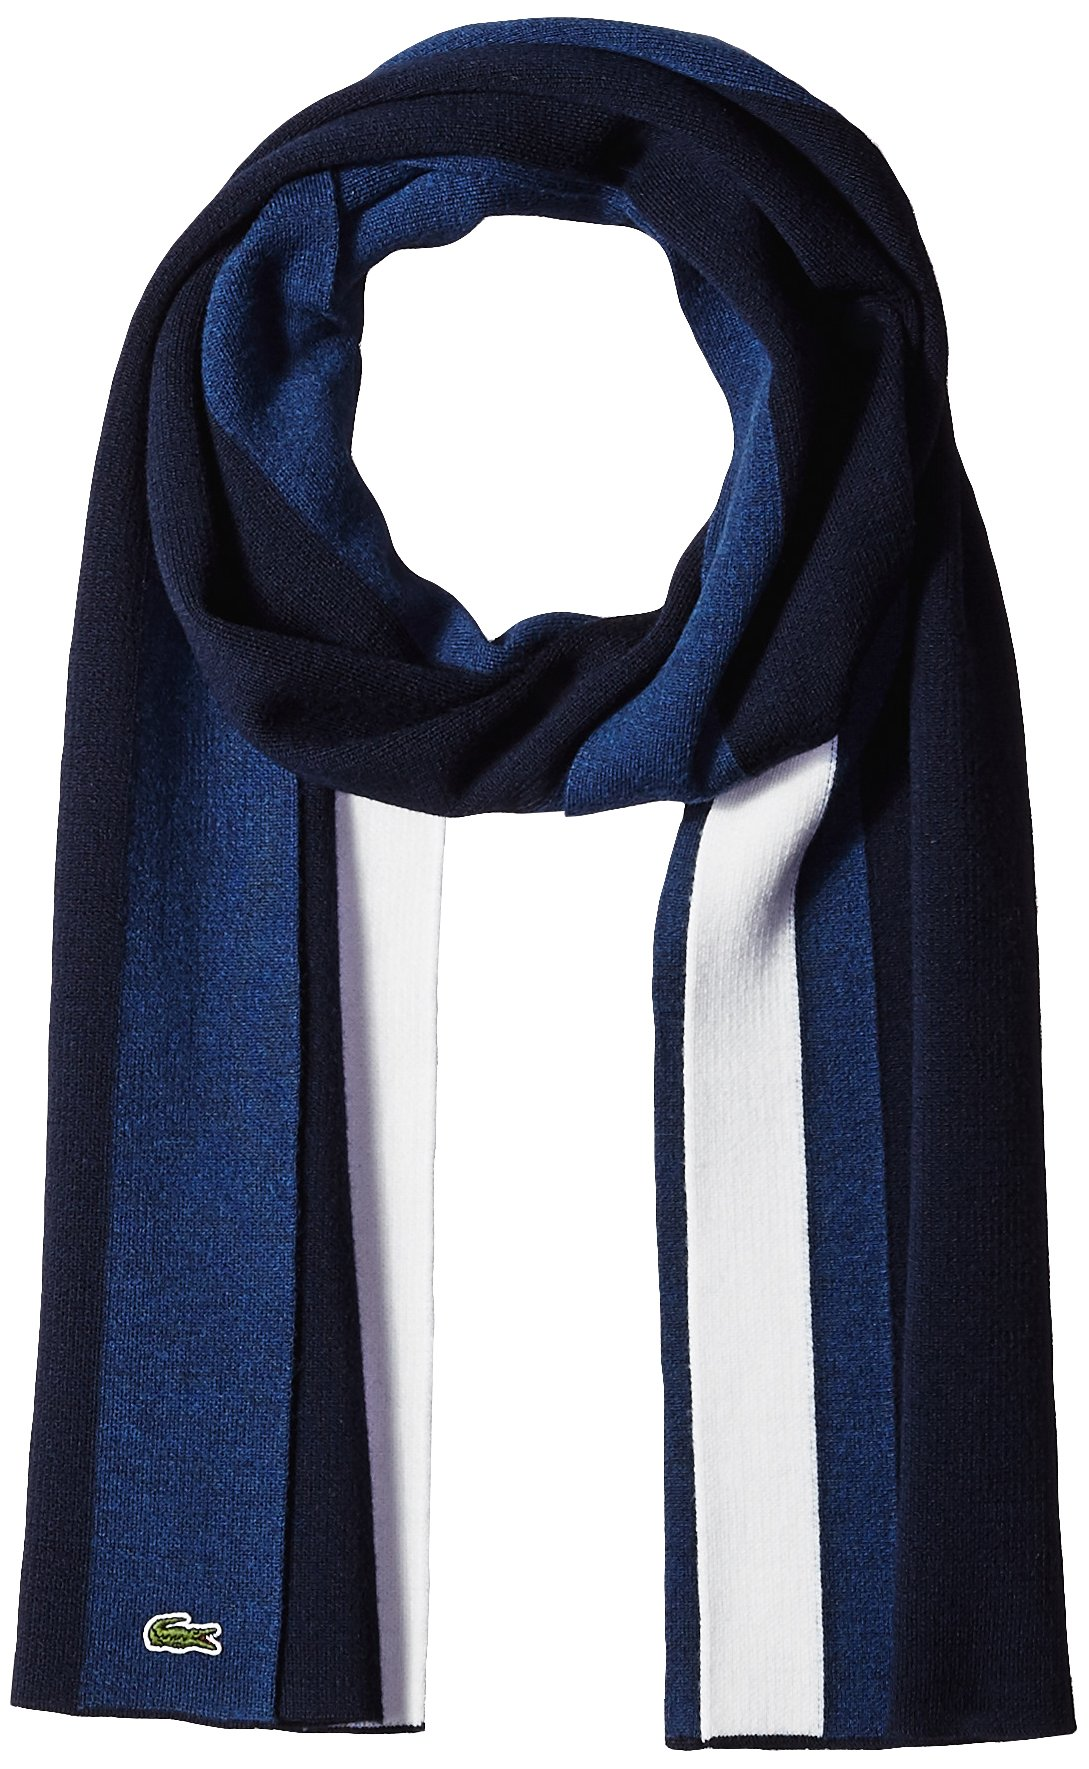 Lacoste Men's Mif Double Face Wool Scarf, Navy Blue/Philippines Blue/Flour, One Size